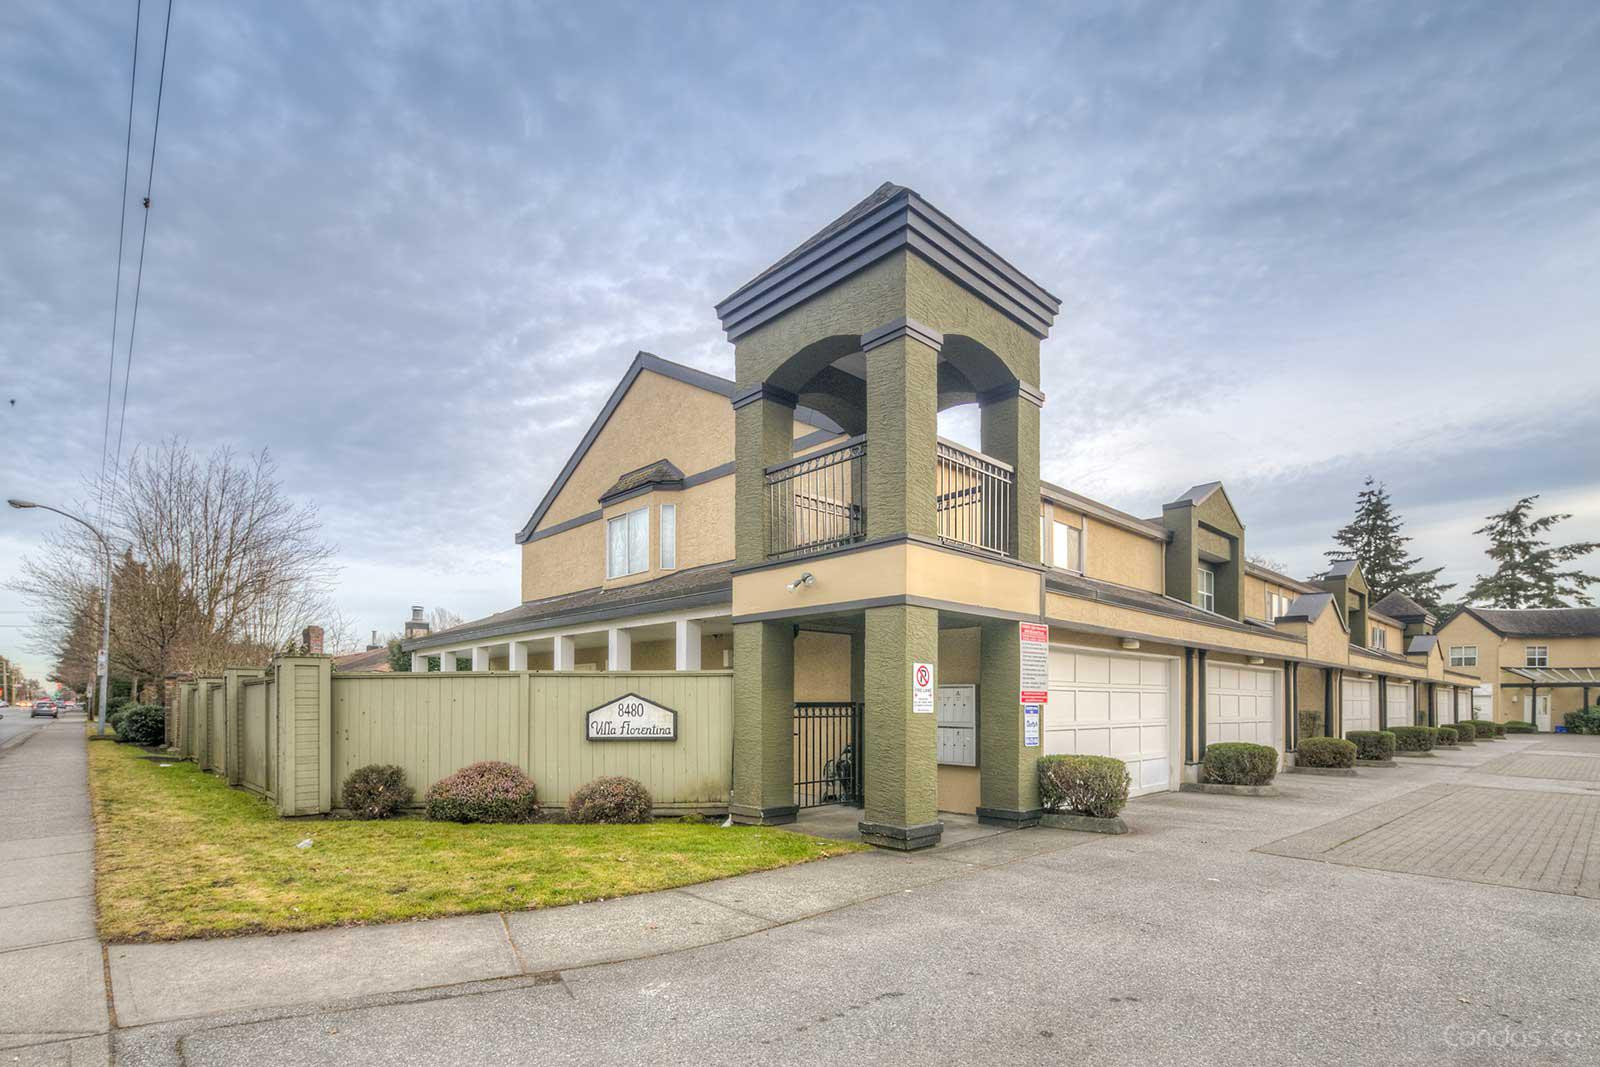 Villa Florentina at 8480 Blundell Rd, Richmond 0